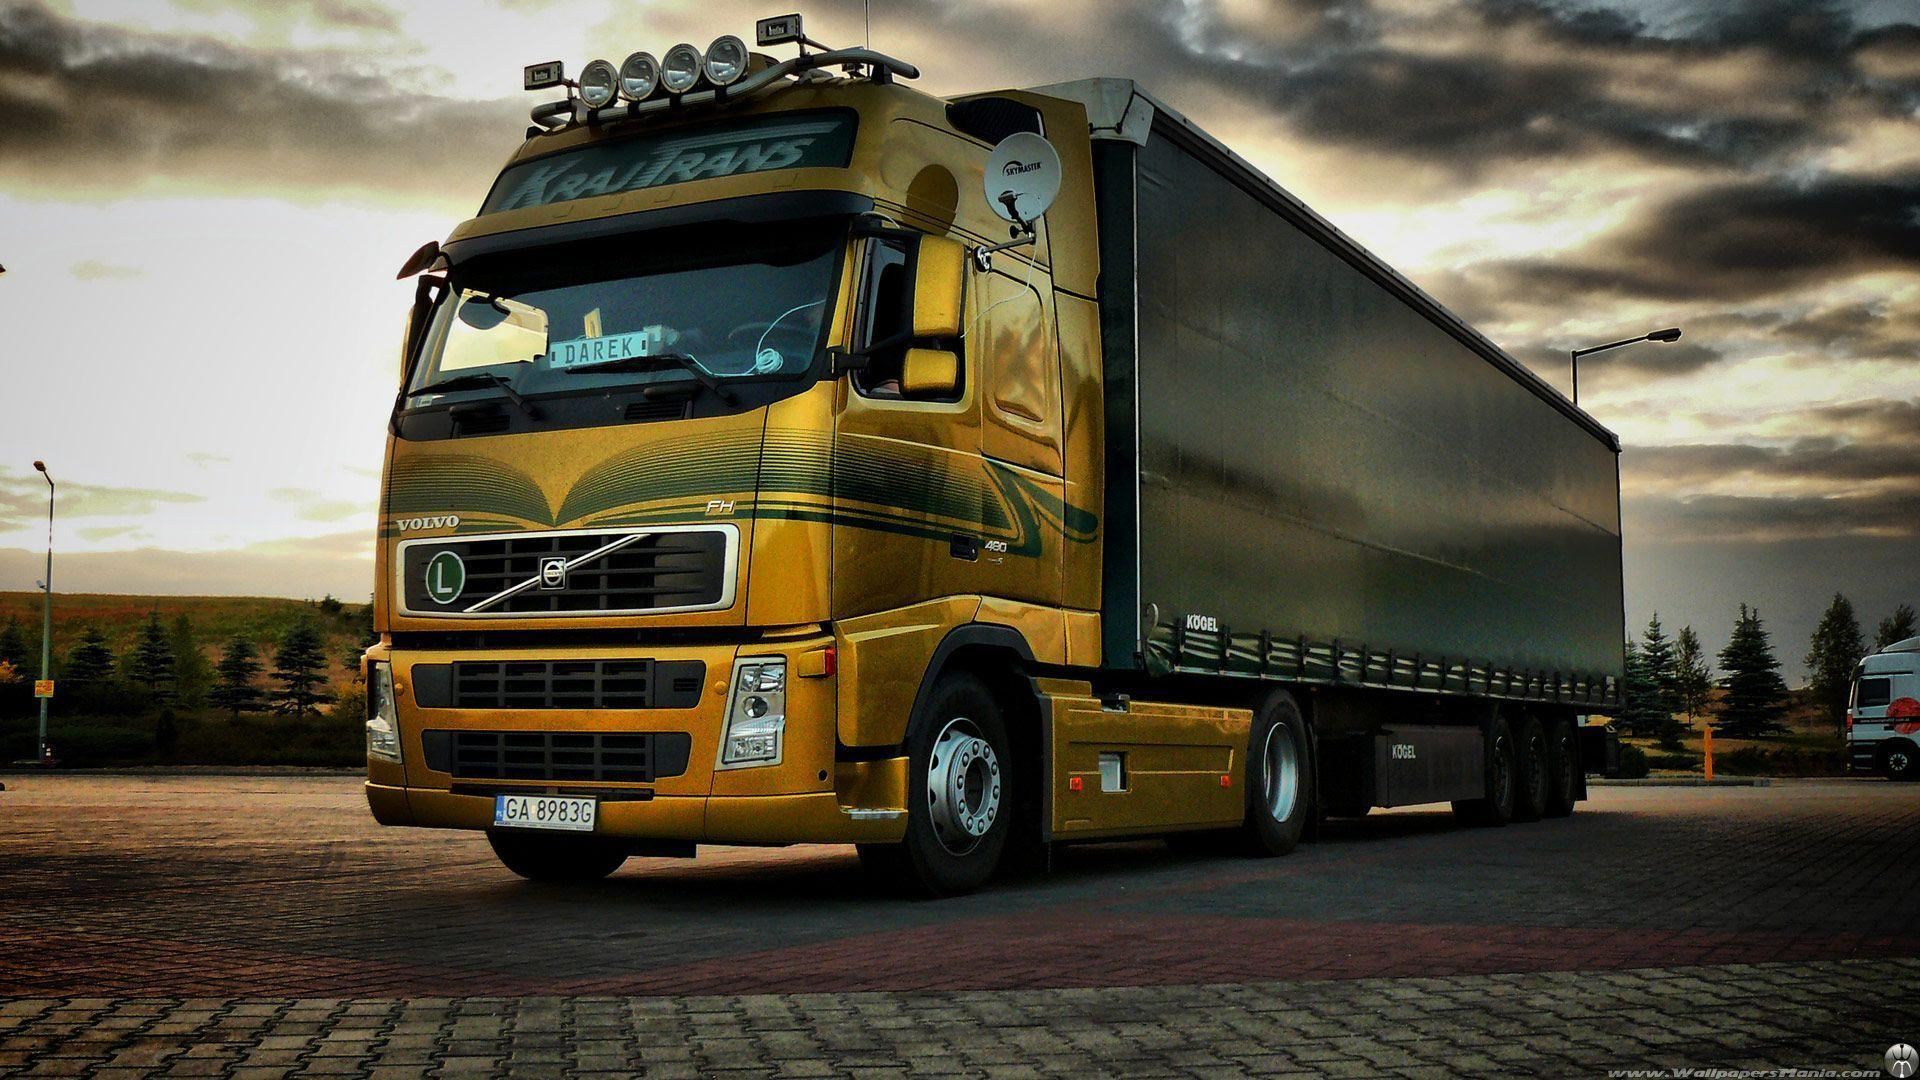 Truck Wallpapers High Resolution - Wallpaper Cave